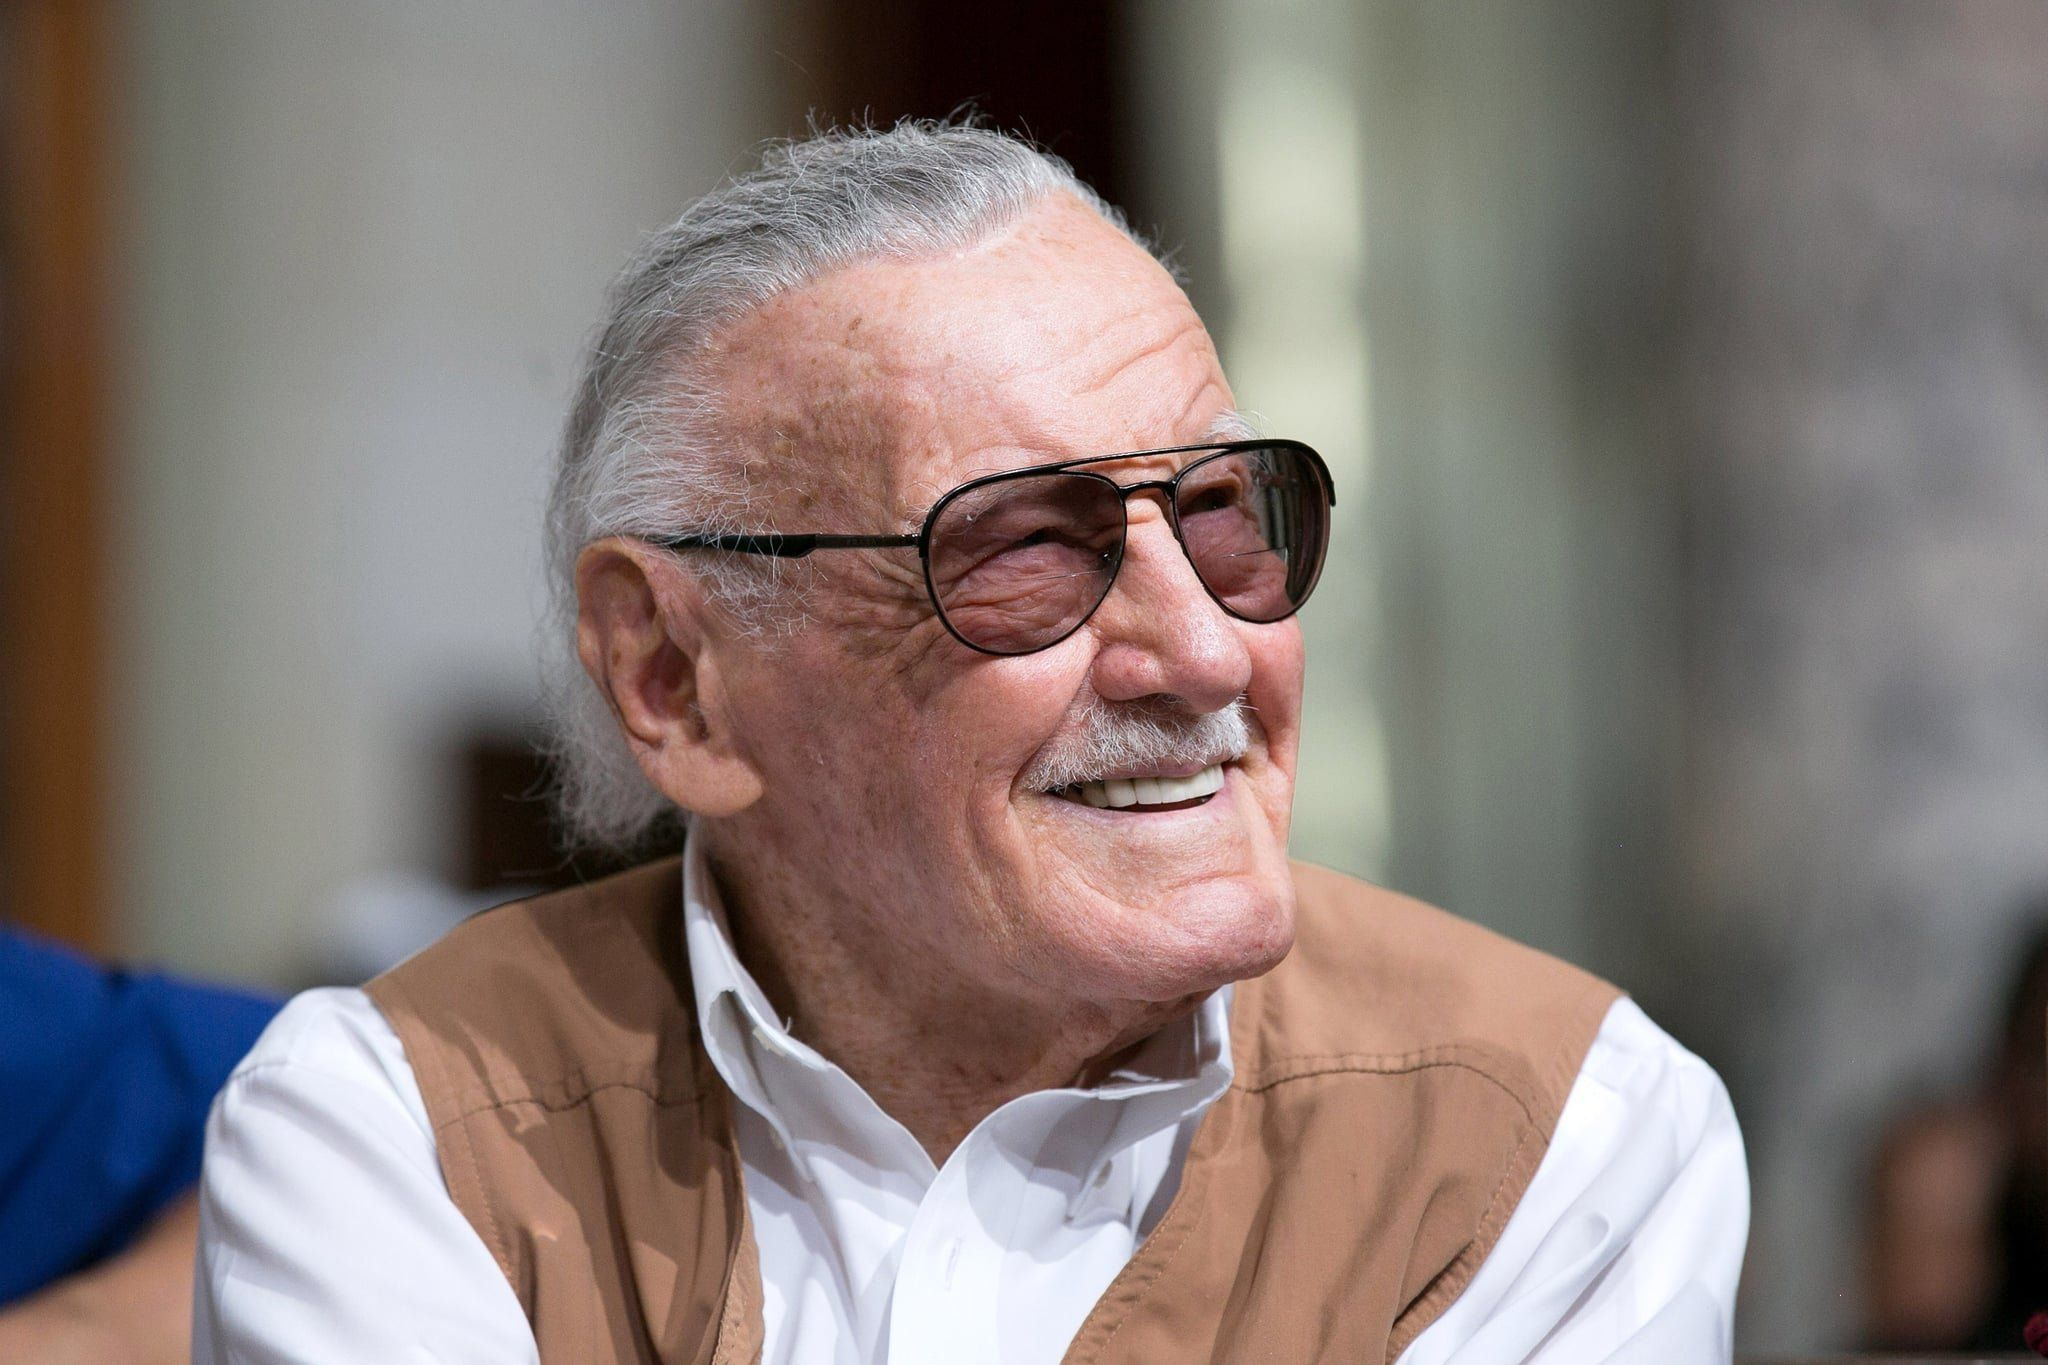 Marvel co-creator Stan Lee's cause of death revealed